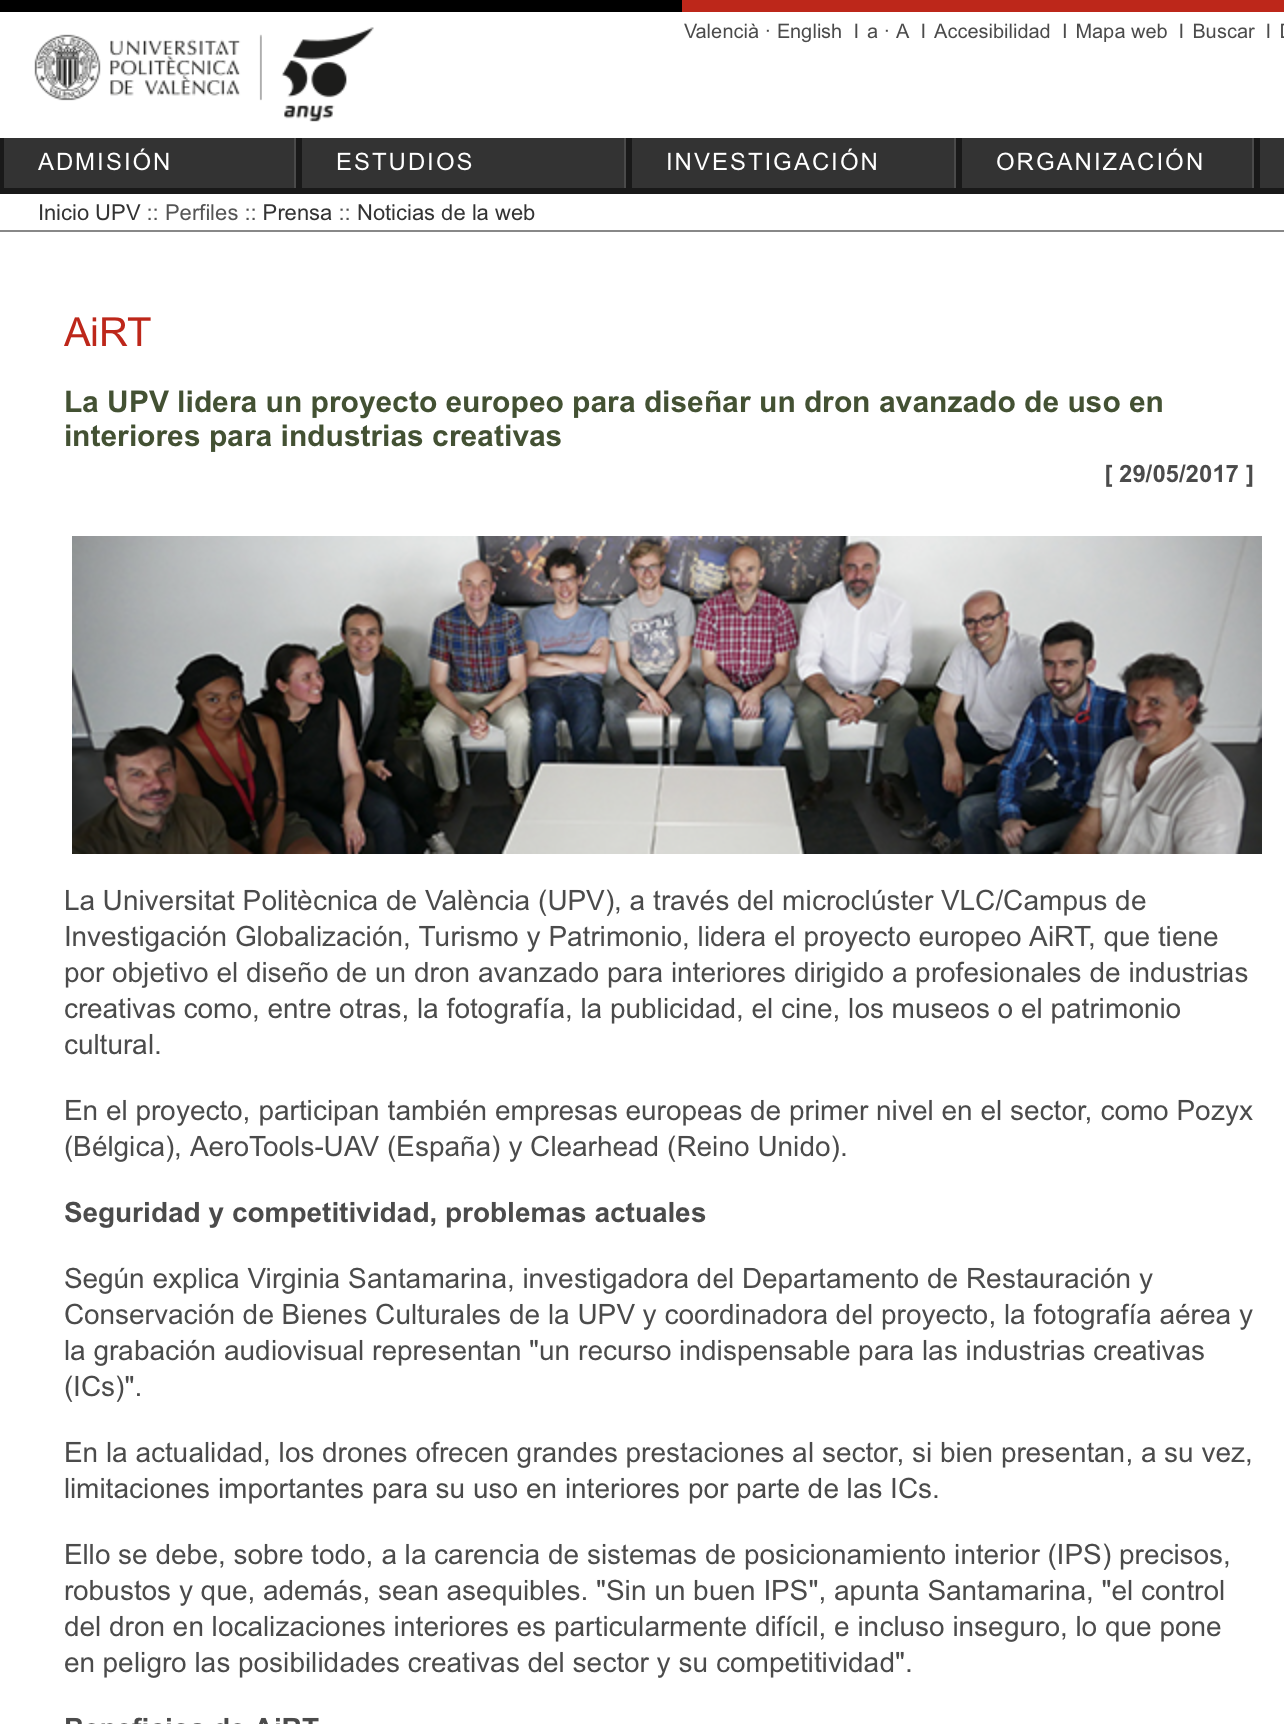 AiRT in UPV